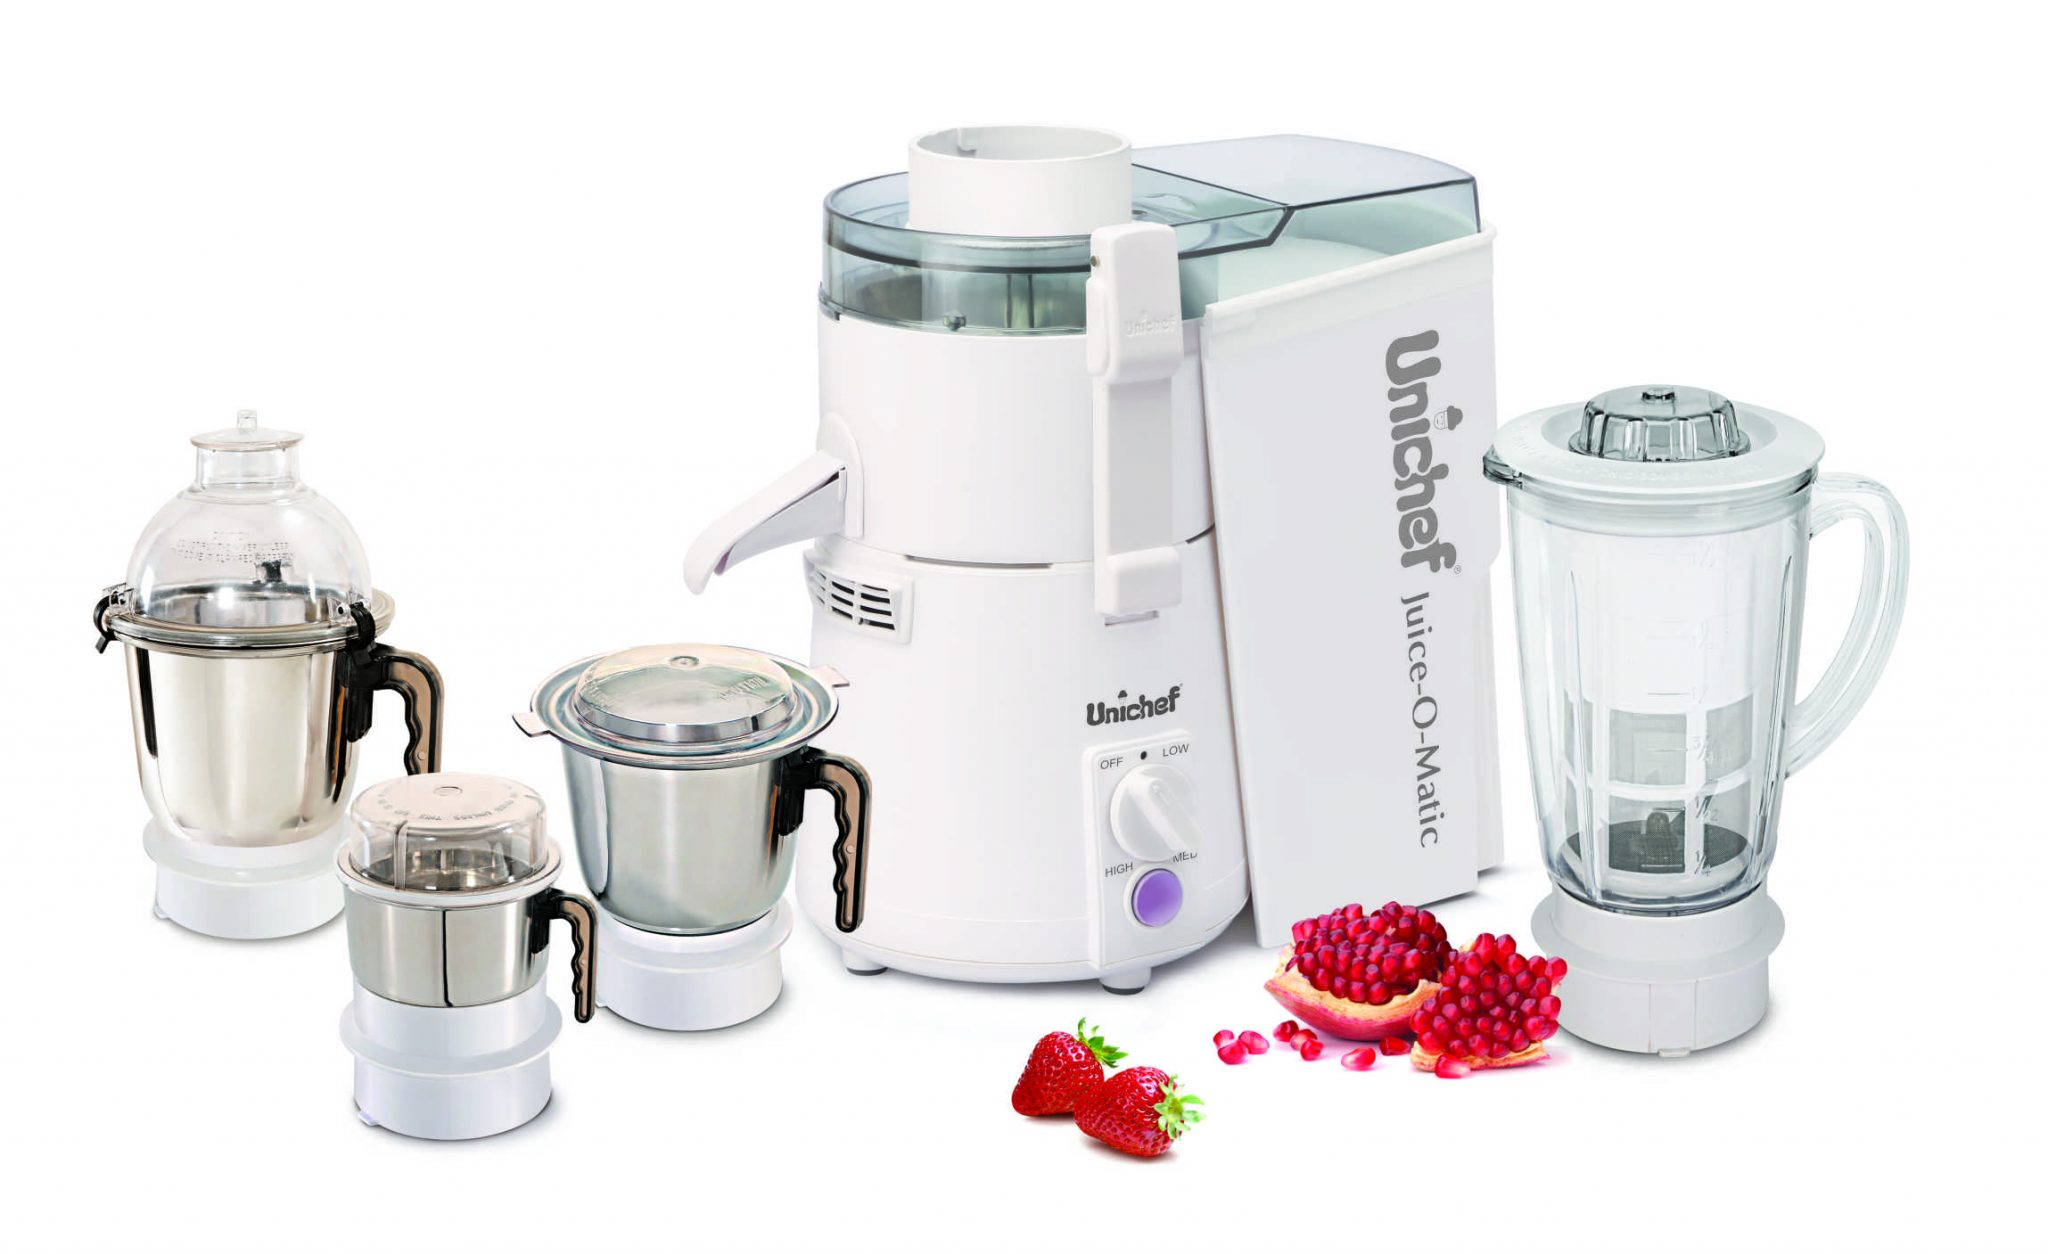 All In One Kitchen Appliance.All In One Juicer Mixer Grinder Blender Unichef